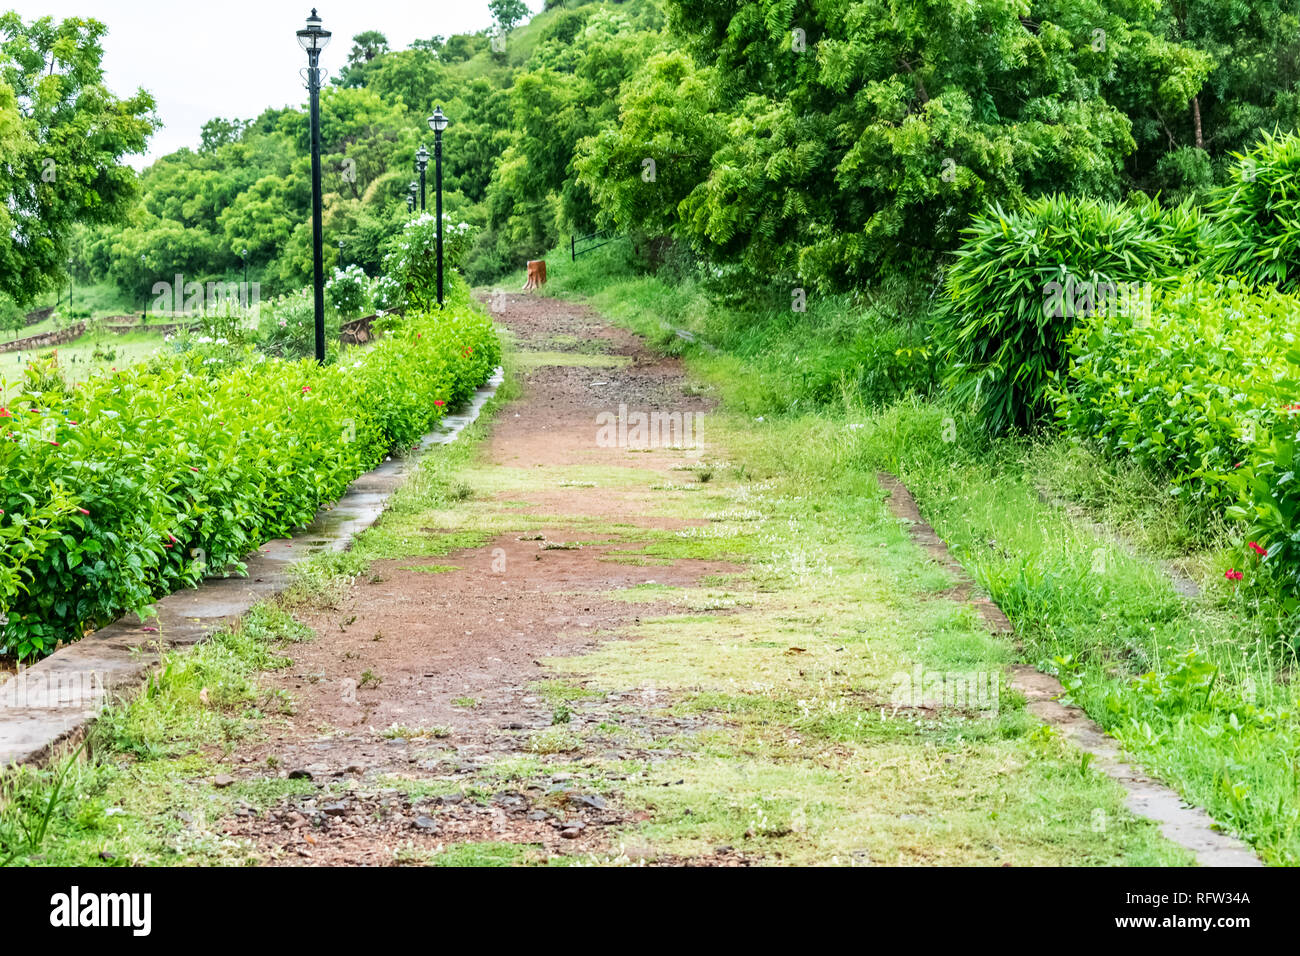 Indian rural garden pathway with green bushes looking awesome. Stock Photo